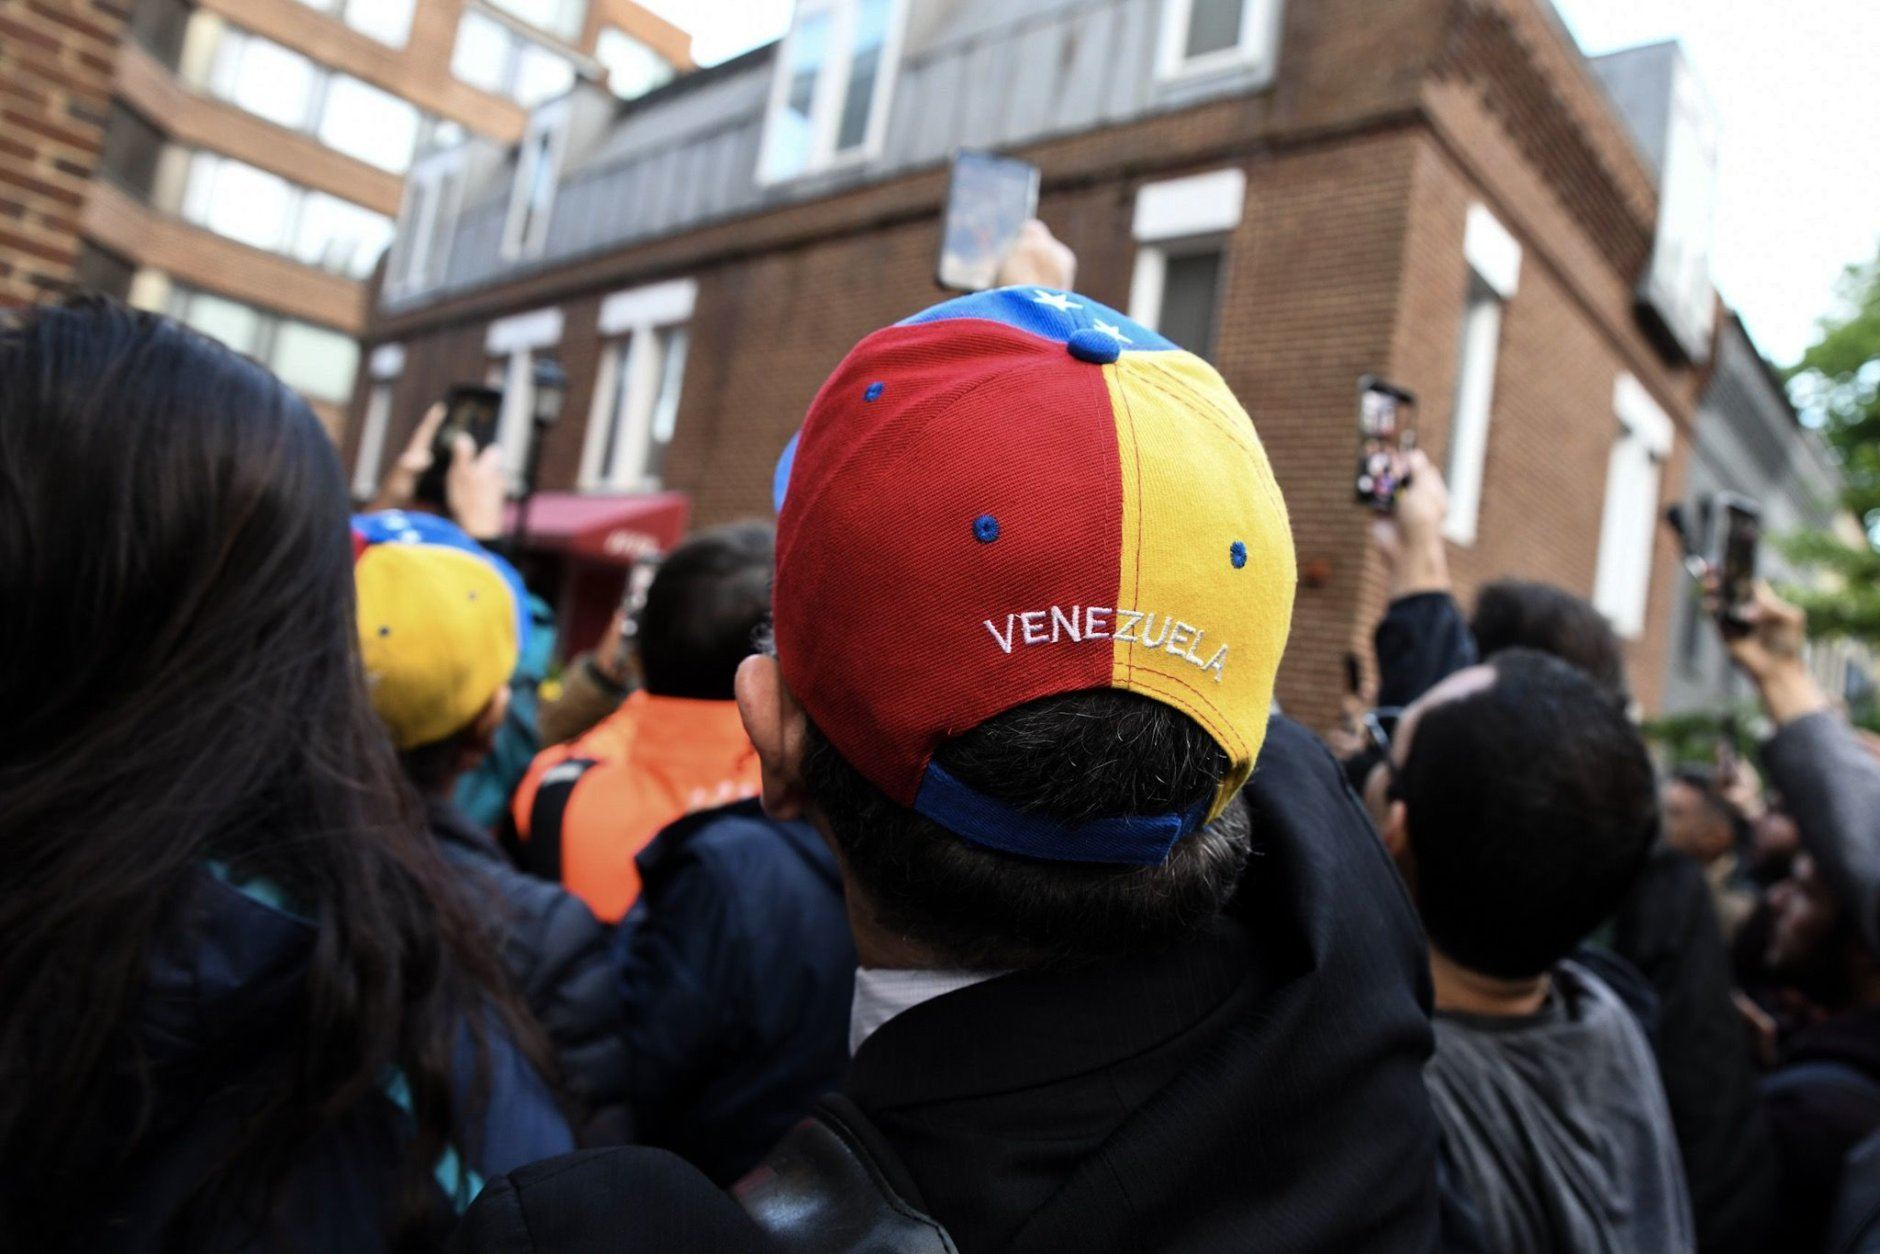 A Venezuelan looks on as a member of Juan Guaido's diplomatic staff speaks with supporters outside the Venezuelan Embassy in Georgetown. (WTOP/Alejandro Alvarez)